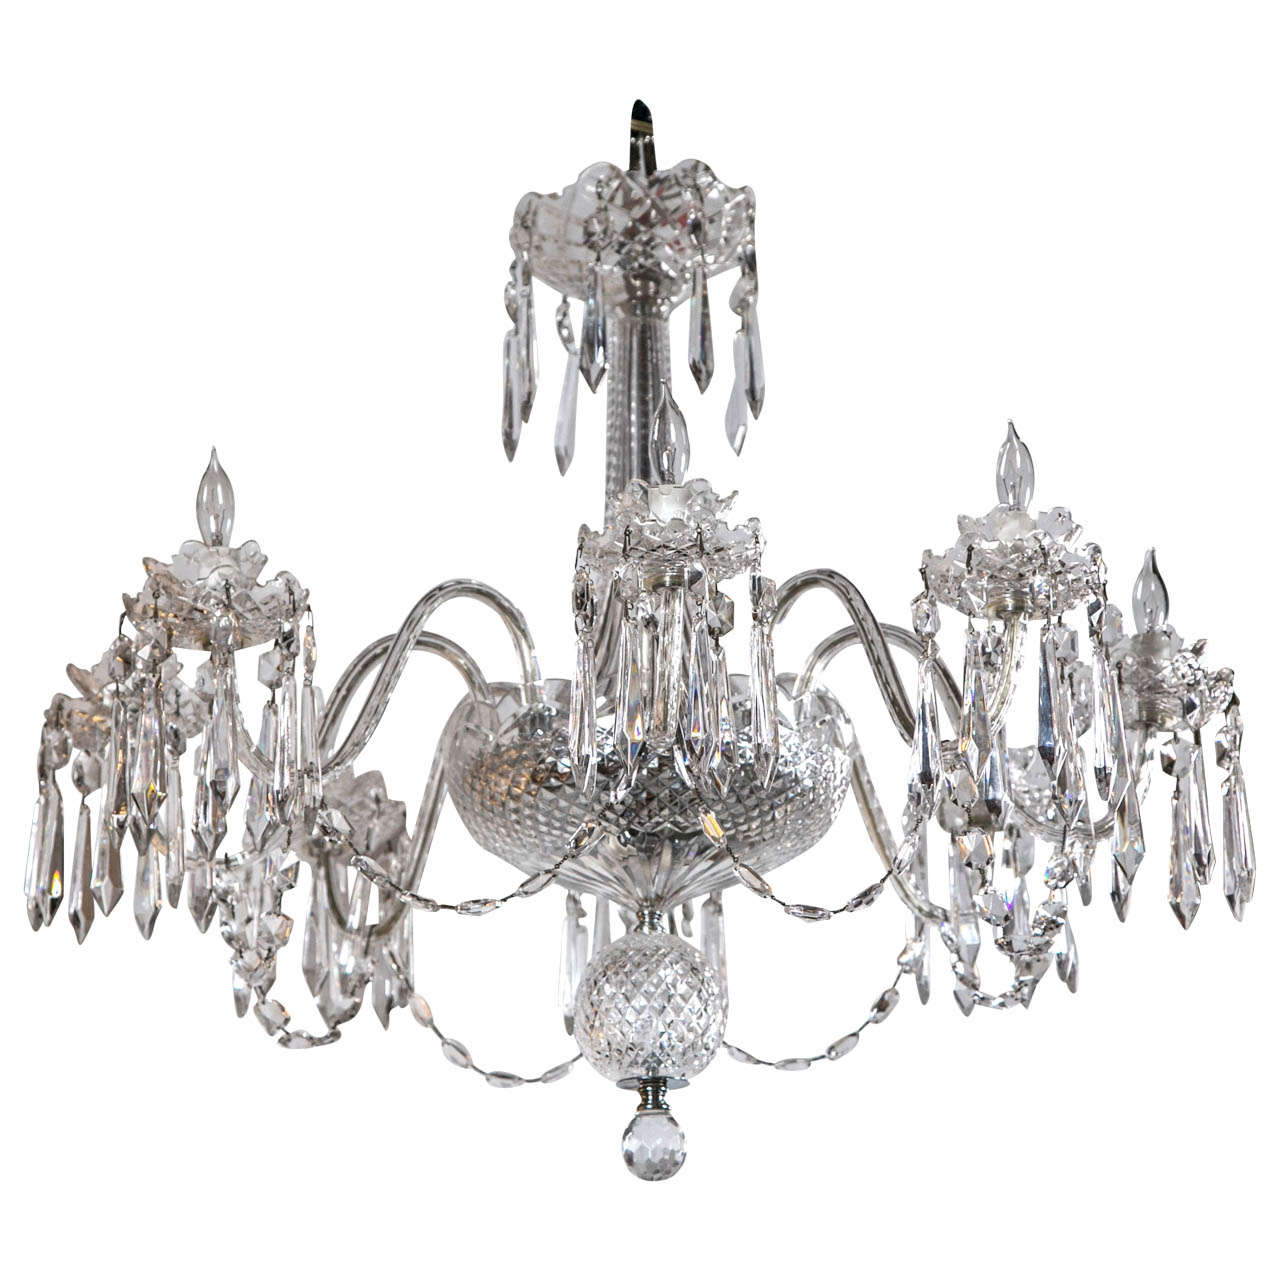 Waterford six light crystal chandelier circa 1970 for sale at 1stdibs waterford crystal chandelier arubaitofo Gallery